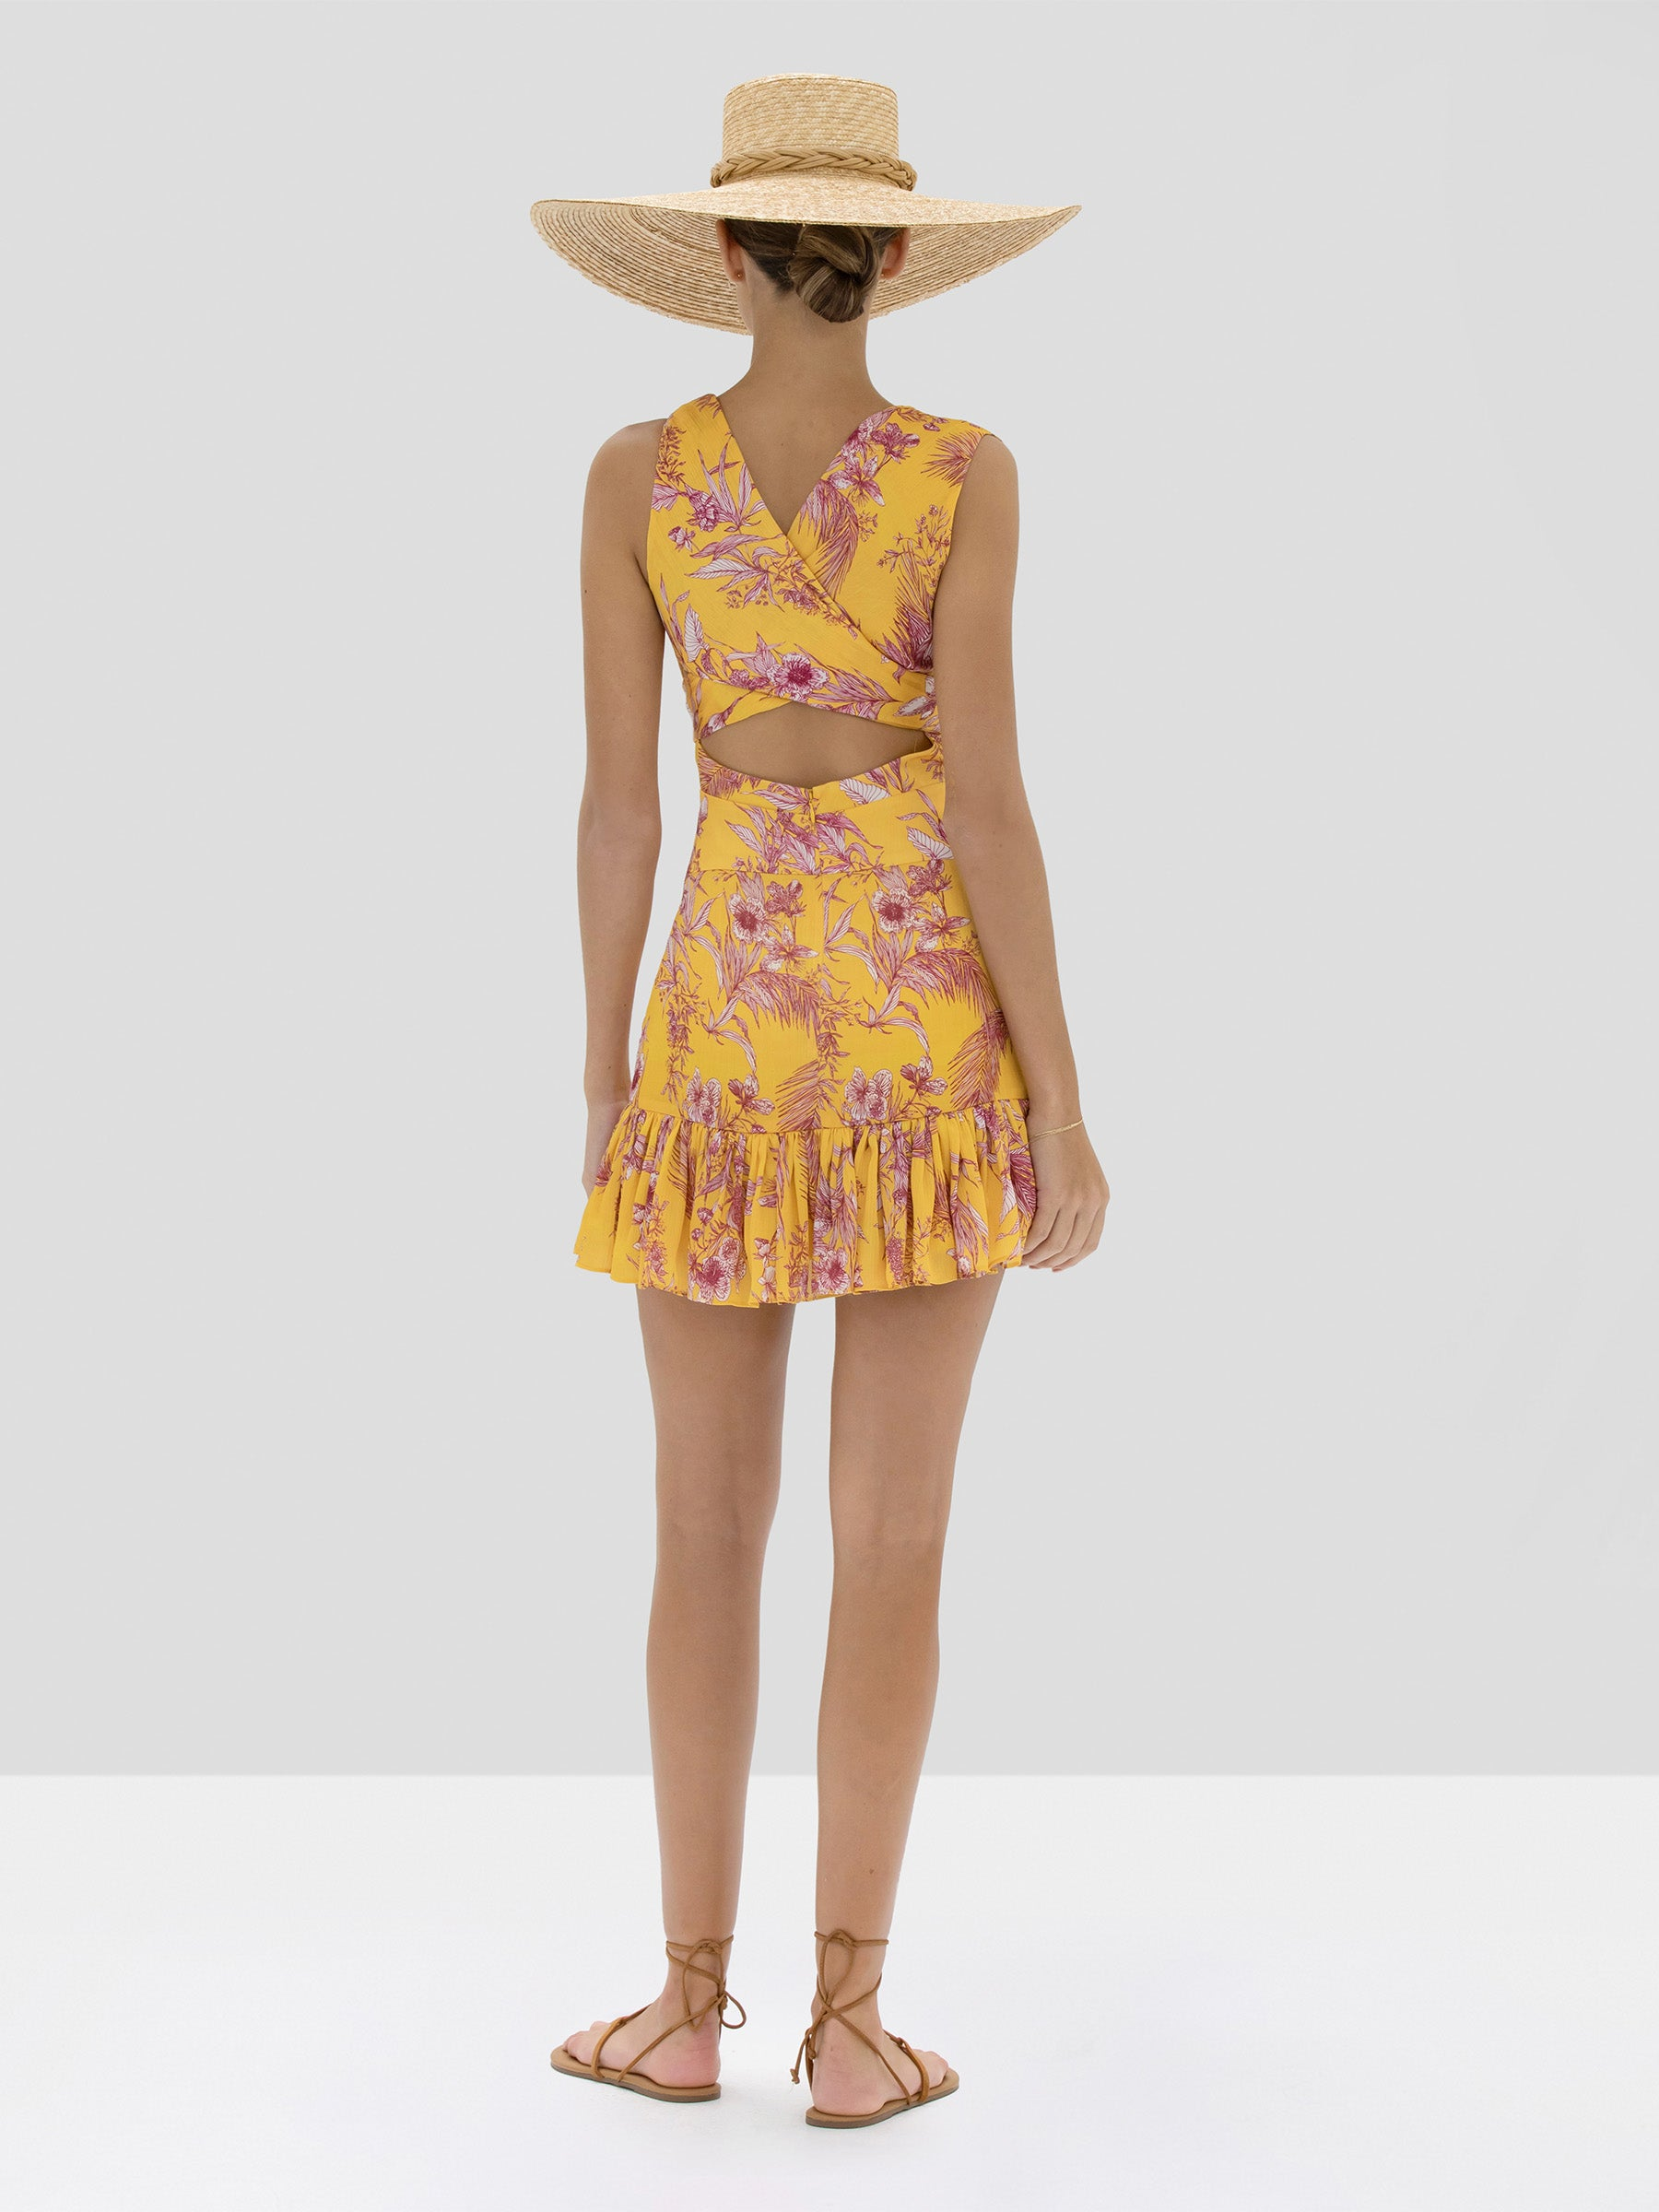 Alexis Cassara Dress in Tuscan Palm from Spring Summer 2020 Collection - Rear View